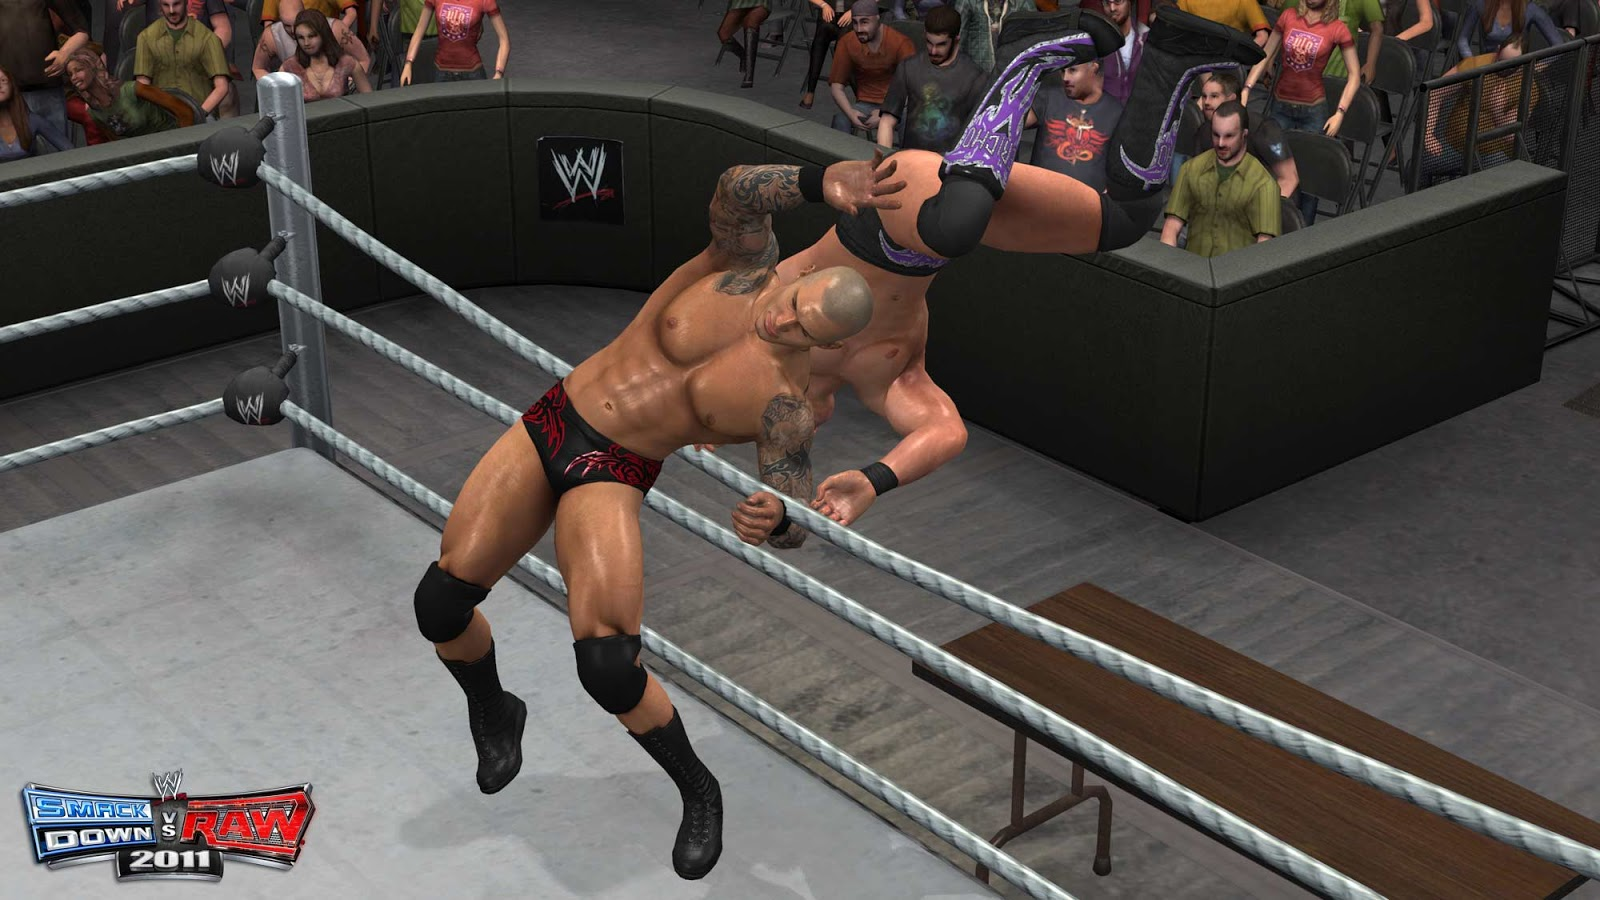 Free Download WWE PC Games For Windows 7/8//10/XP Full Version